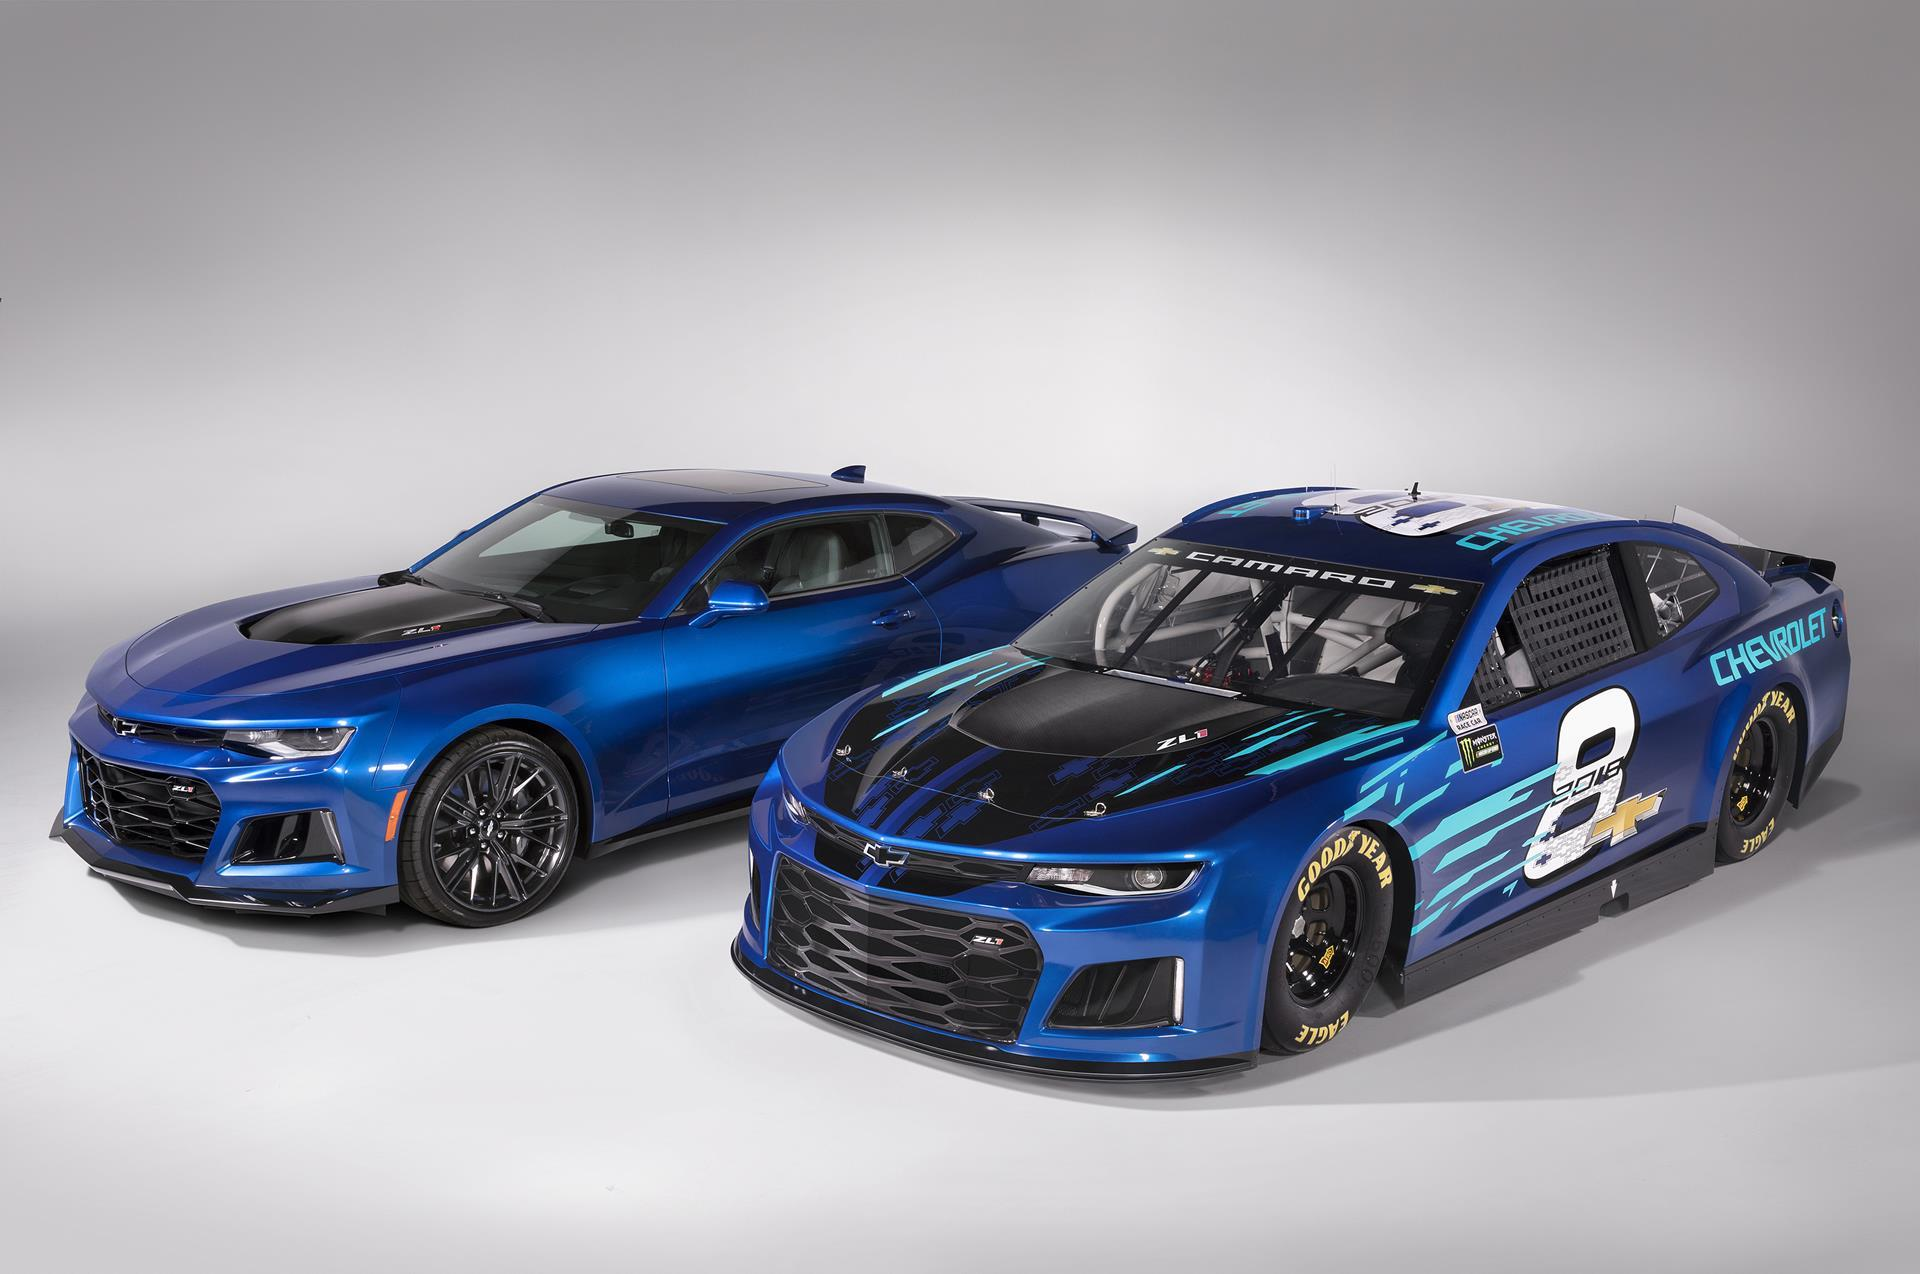 2018 Chevrolet Camaro ZL1 NASCAR News and Information, Research, and Pricing